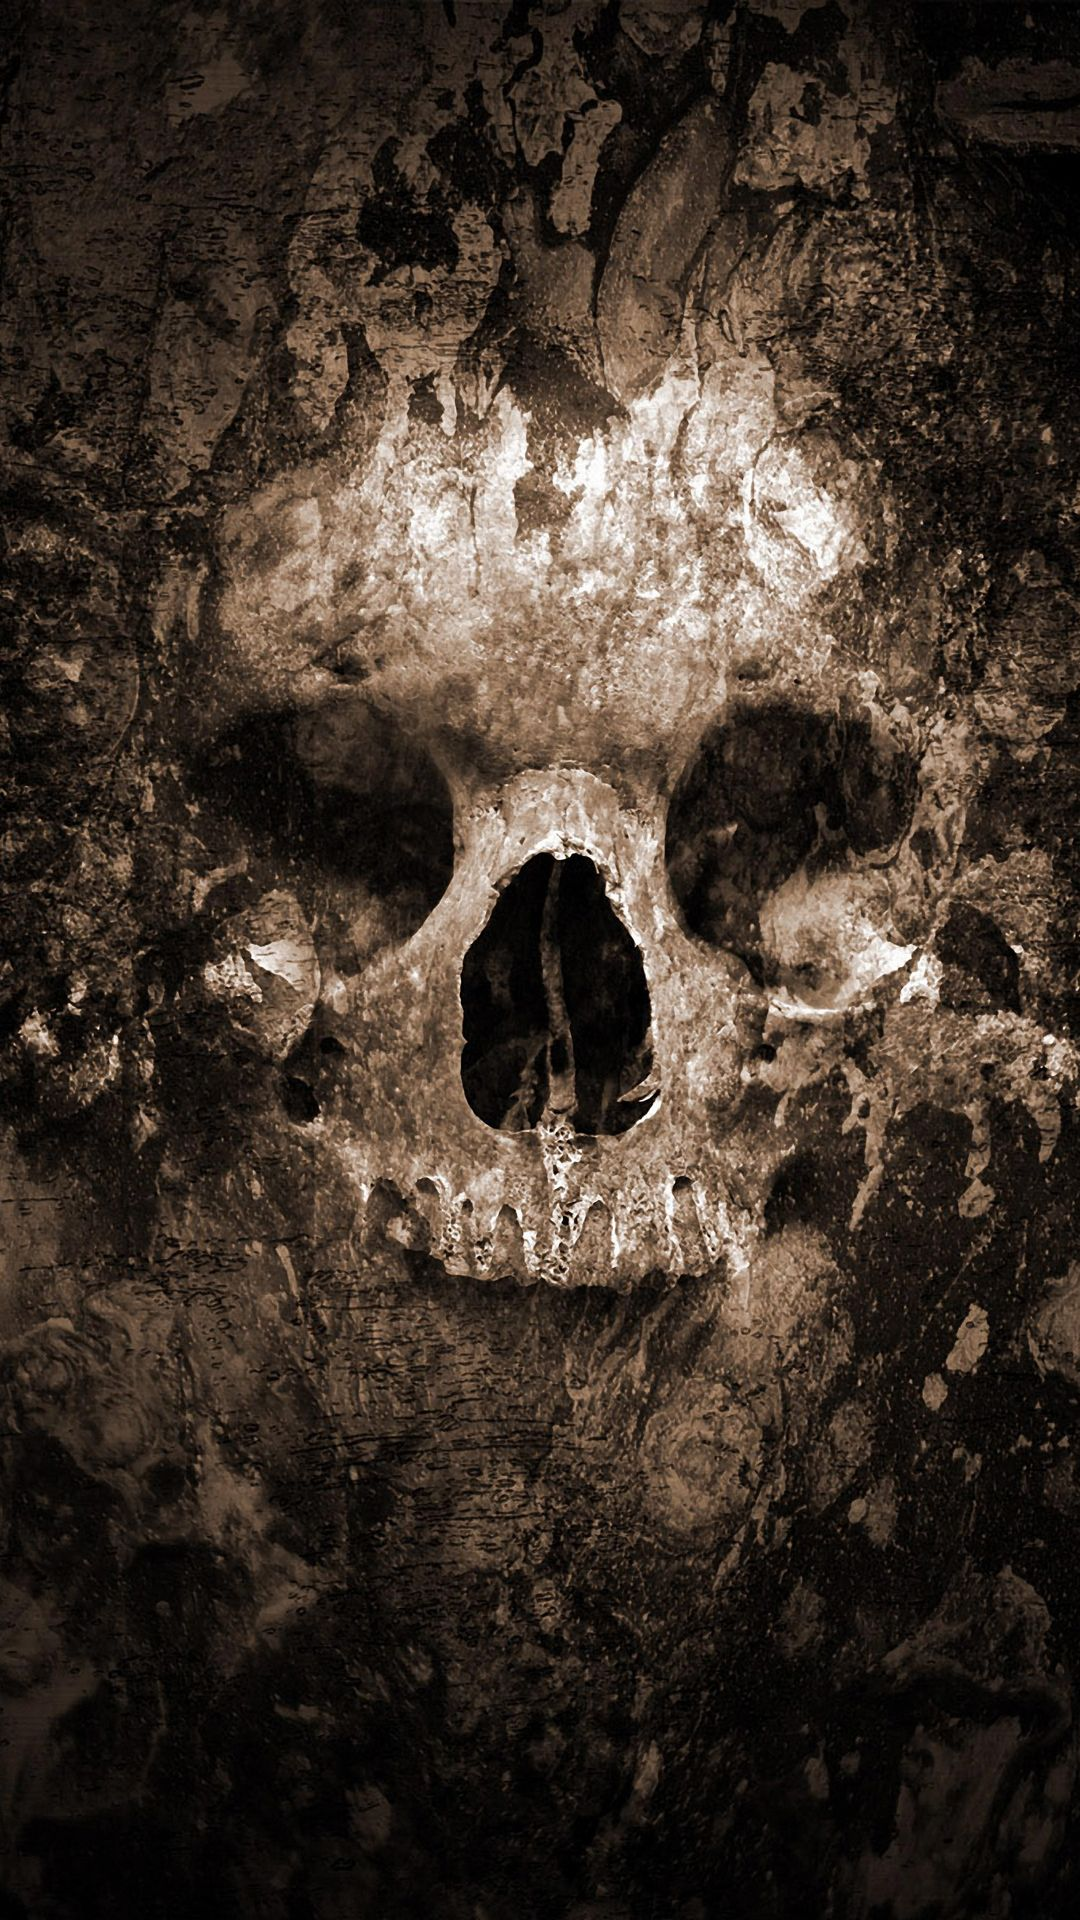 1080x1920 Skull Halloween - Best htc one wallpapers, free and easy to ...